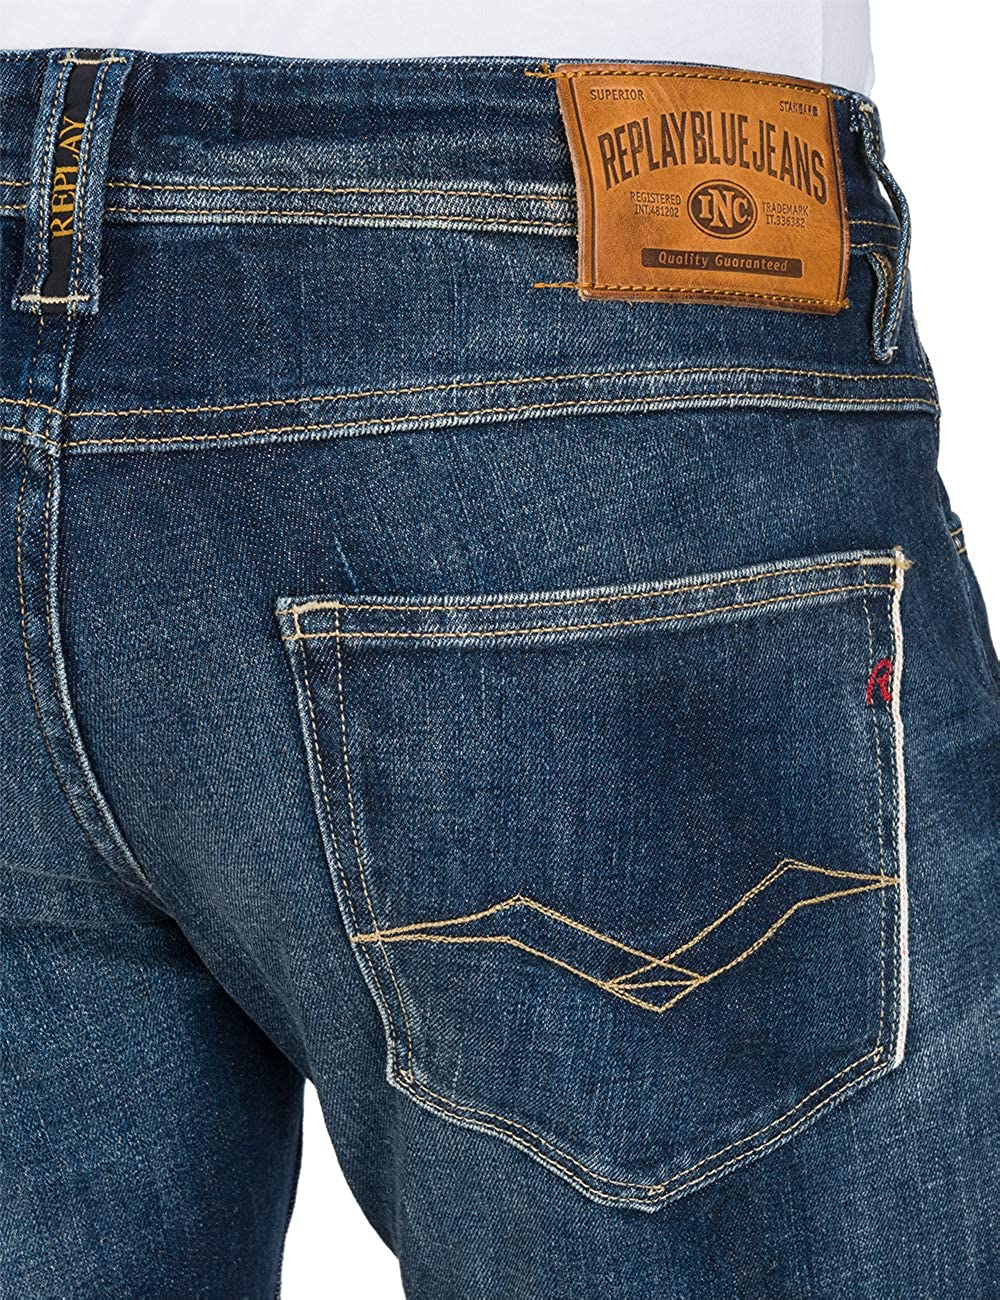 3cb87b68 Replay Men's Selvedge Ronas Slim Fit Jeans Blue in Size 33W 32L:  Amazon.co.uk: Clothing